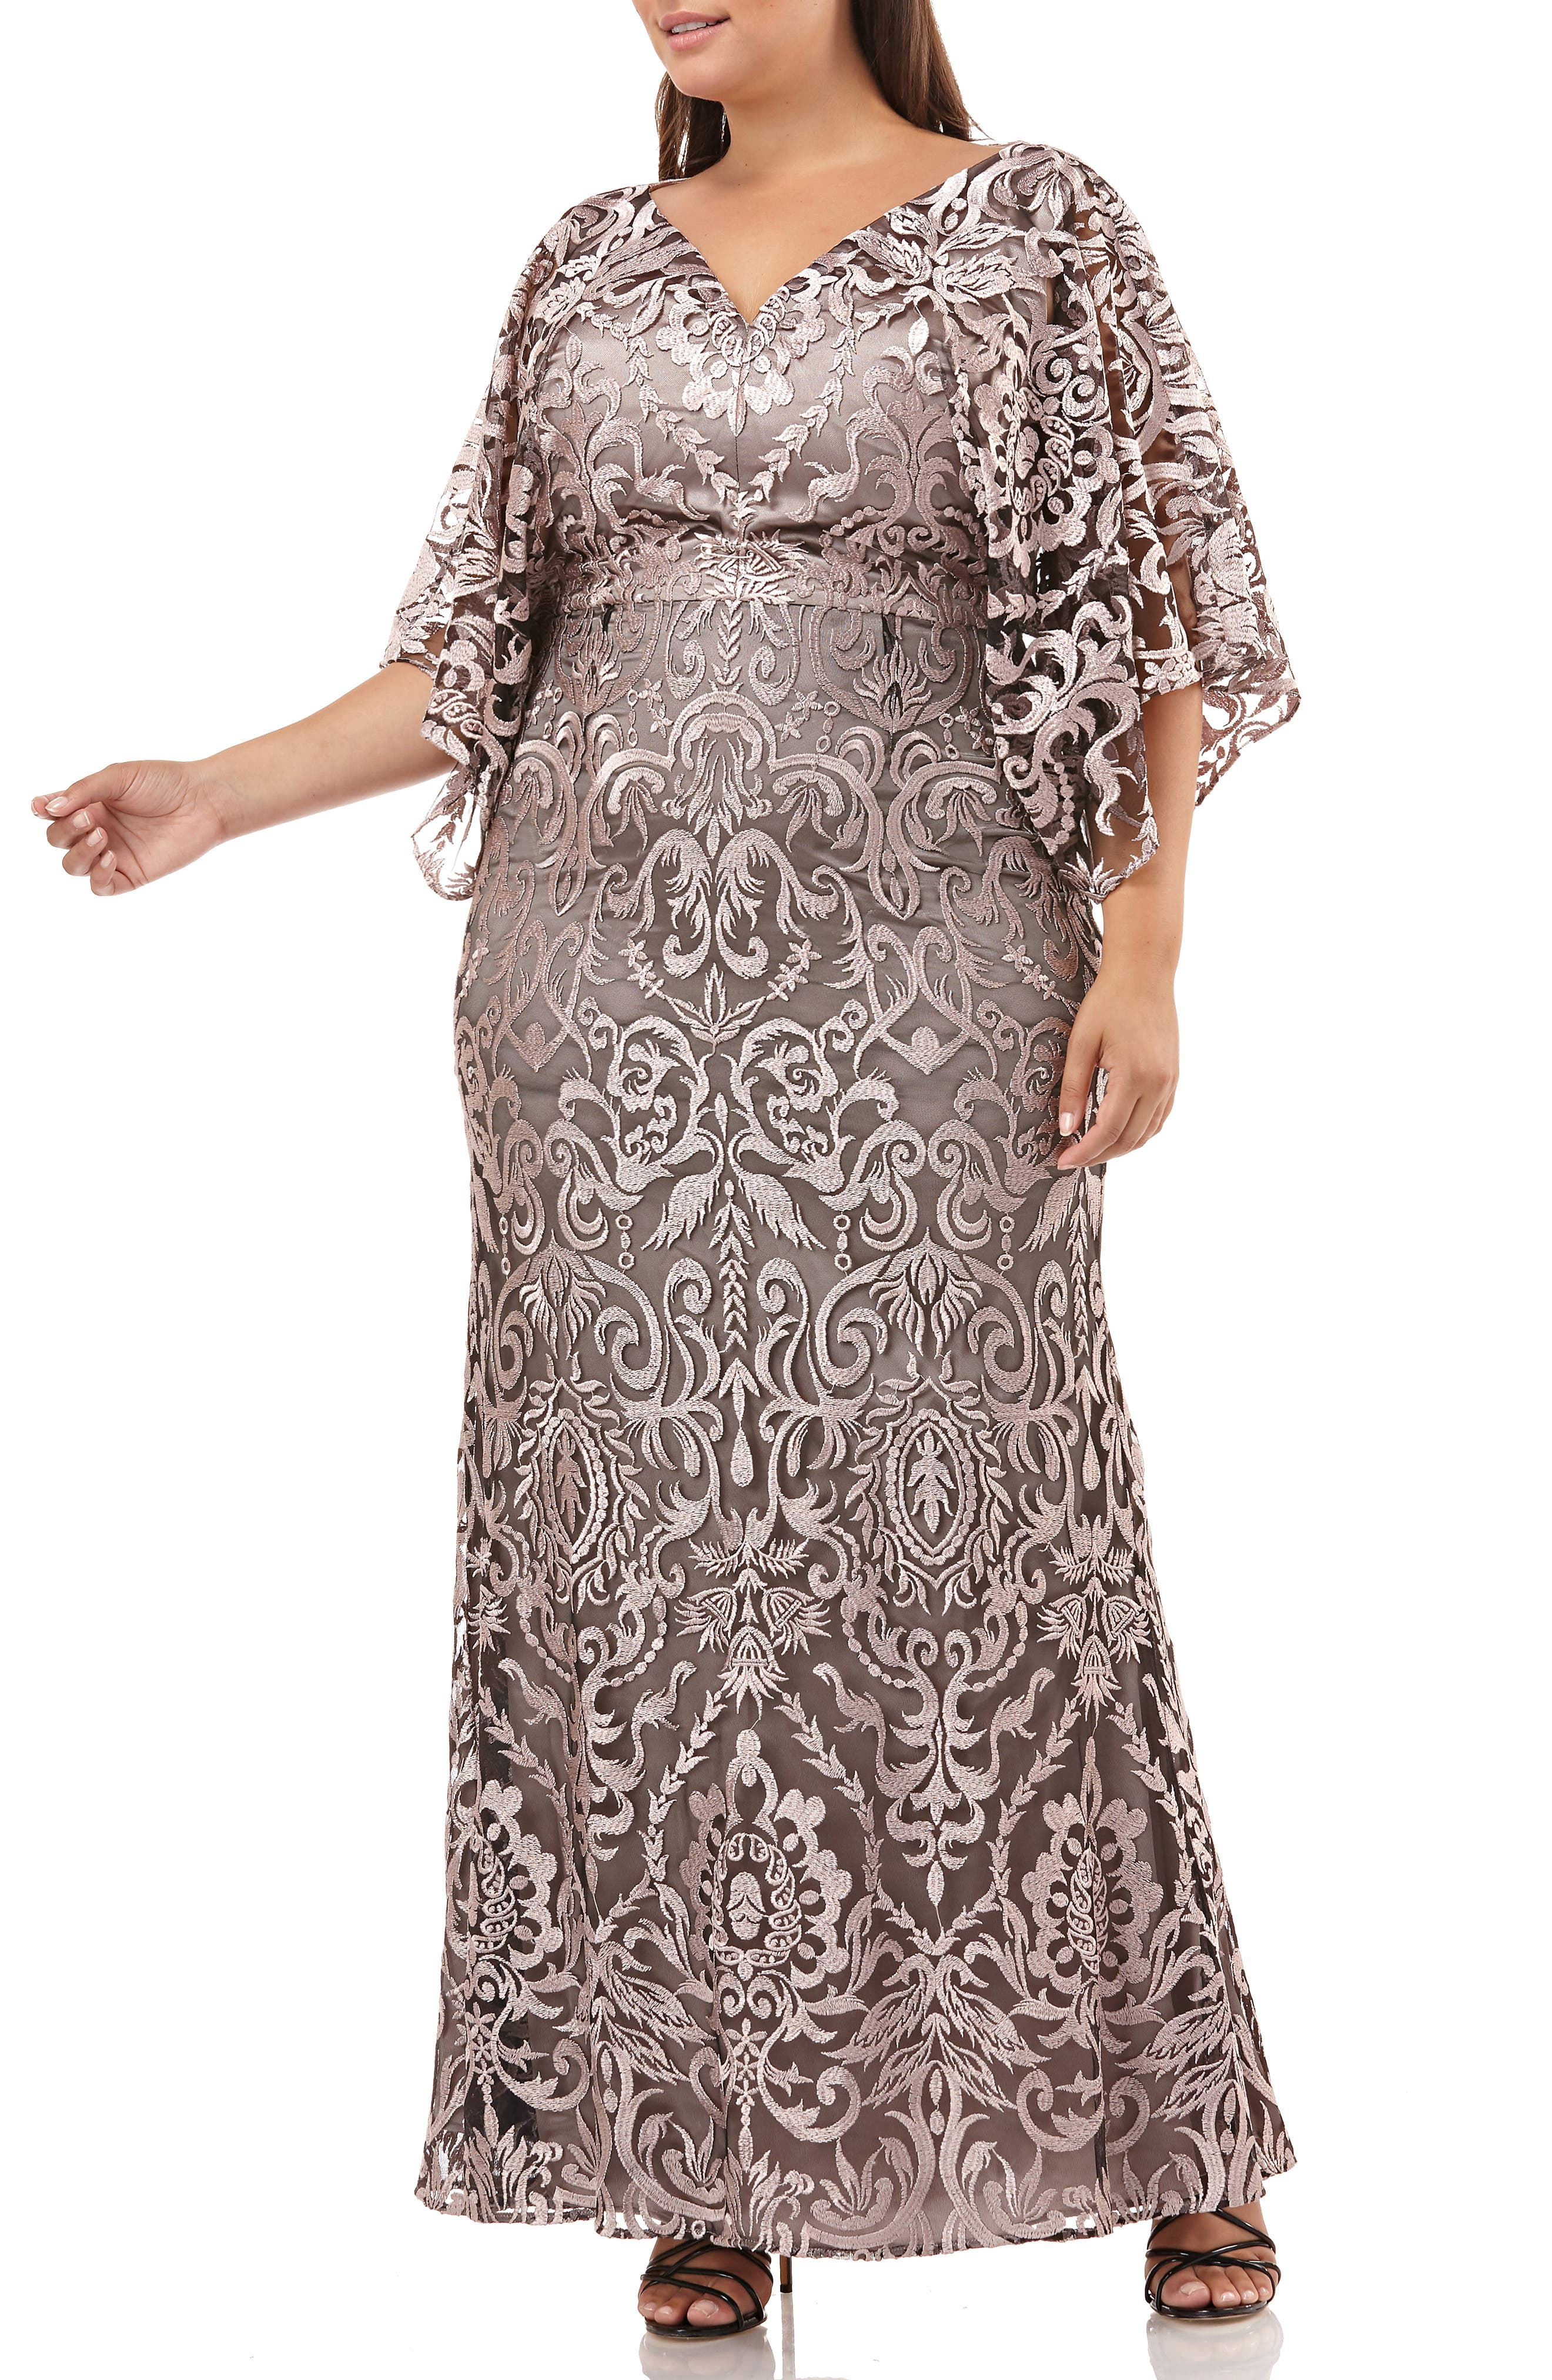 Vintage 1920s Dresses – Where to Buy Plus Size Womens Js Collections Embroidered Lace Evening Dress $358.00 AT vintagedancer.com